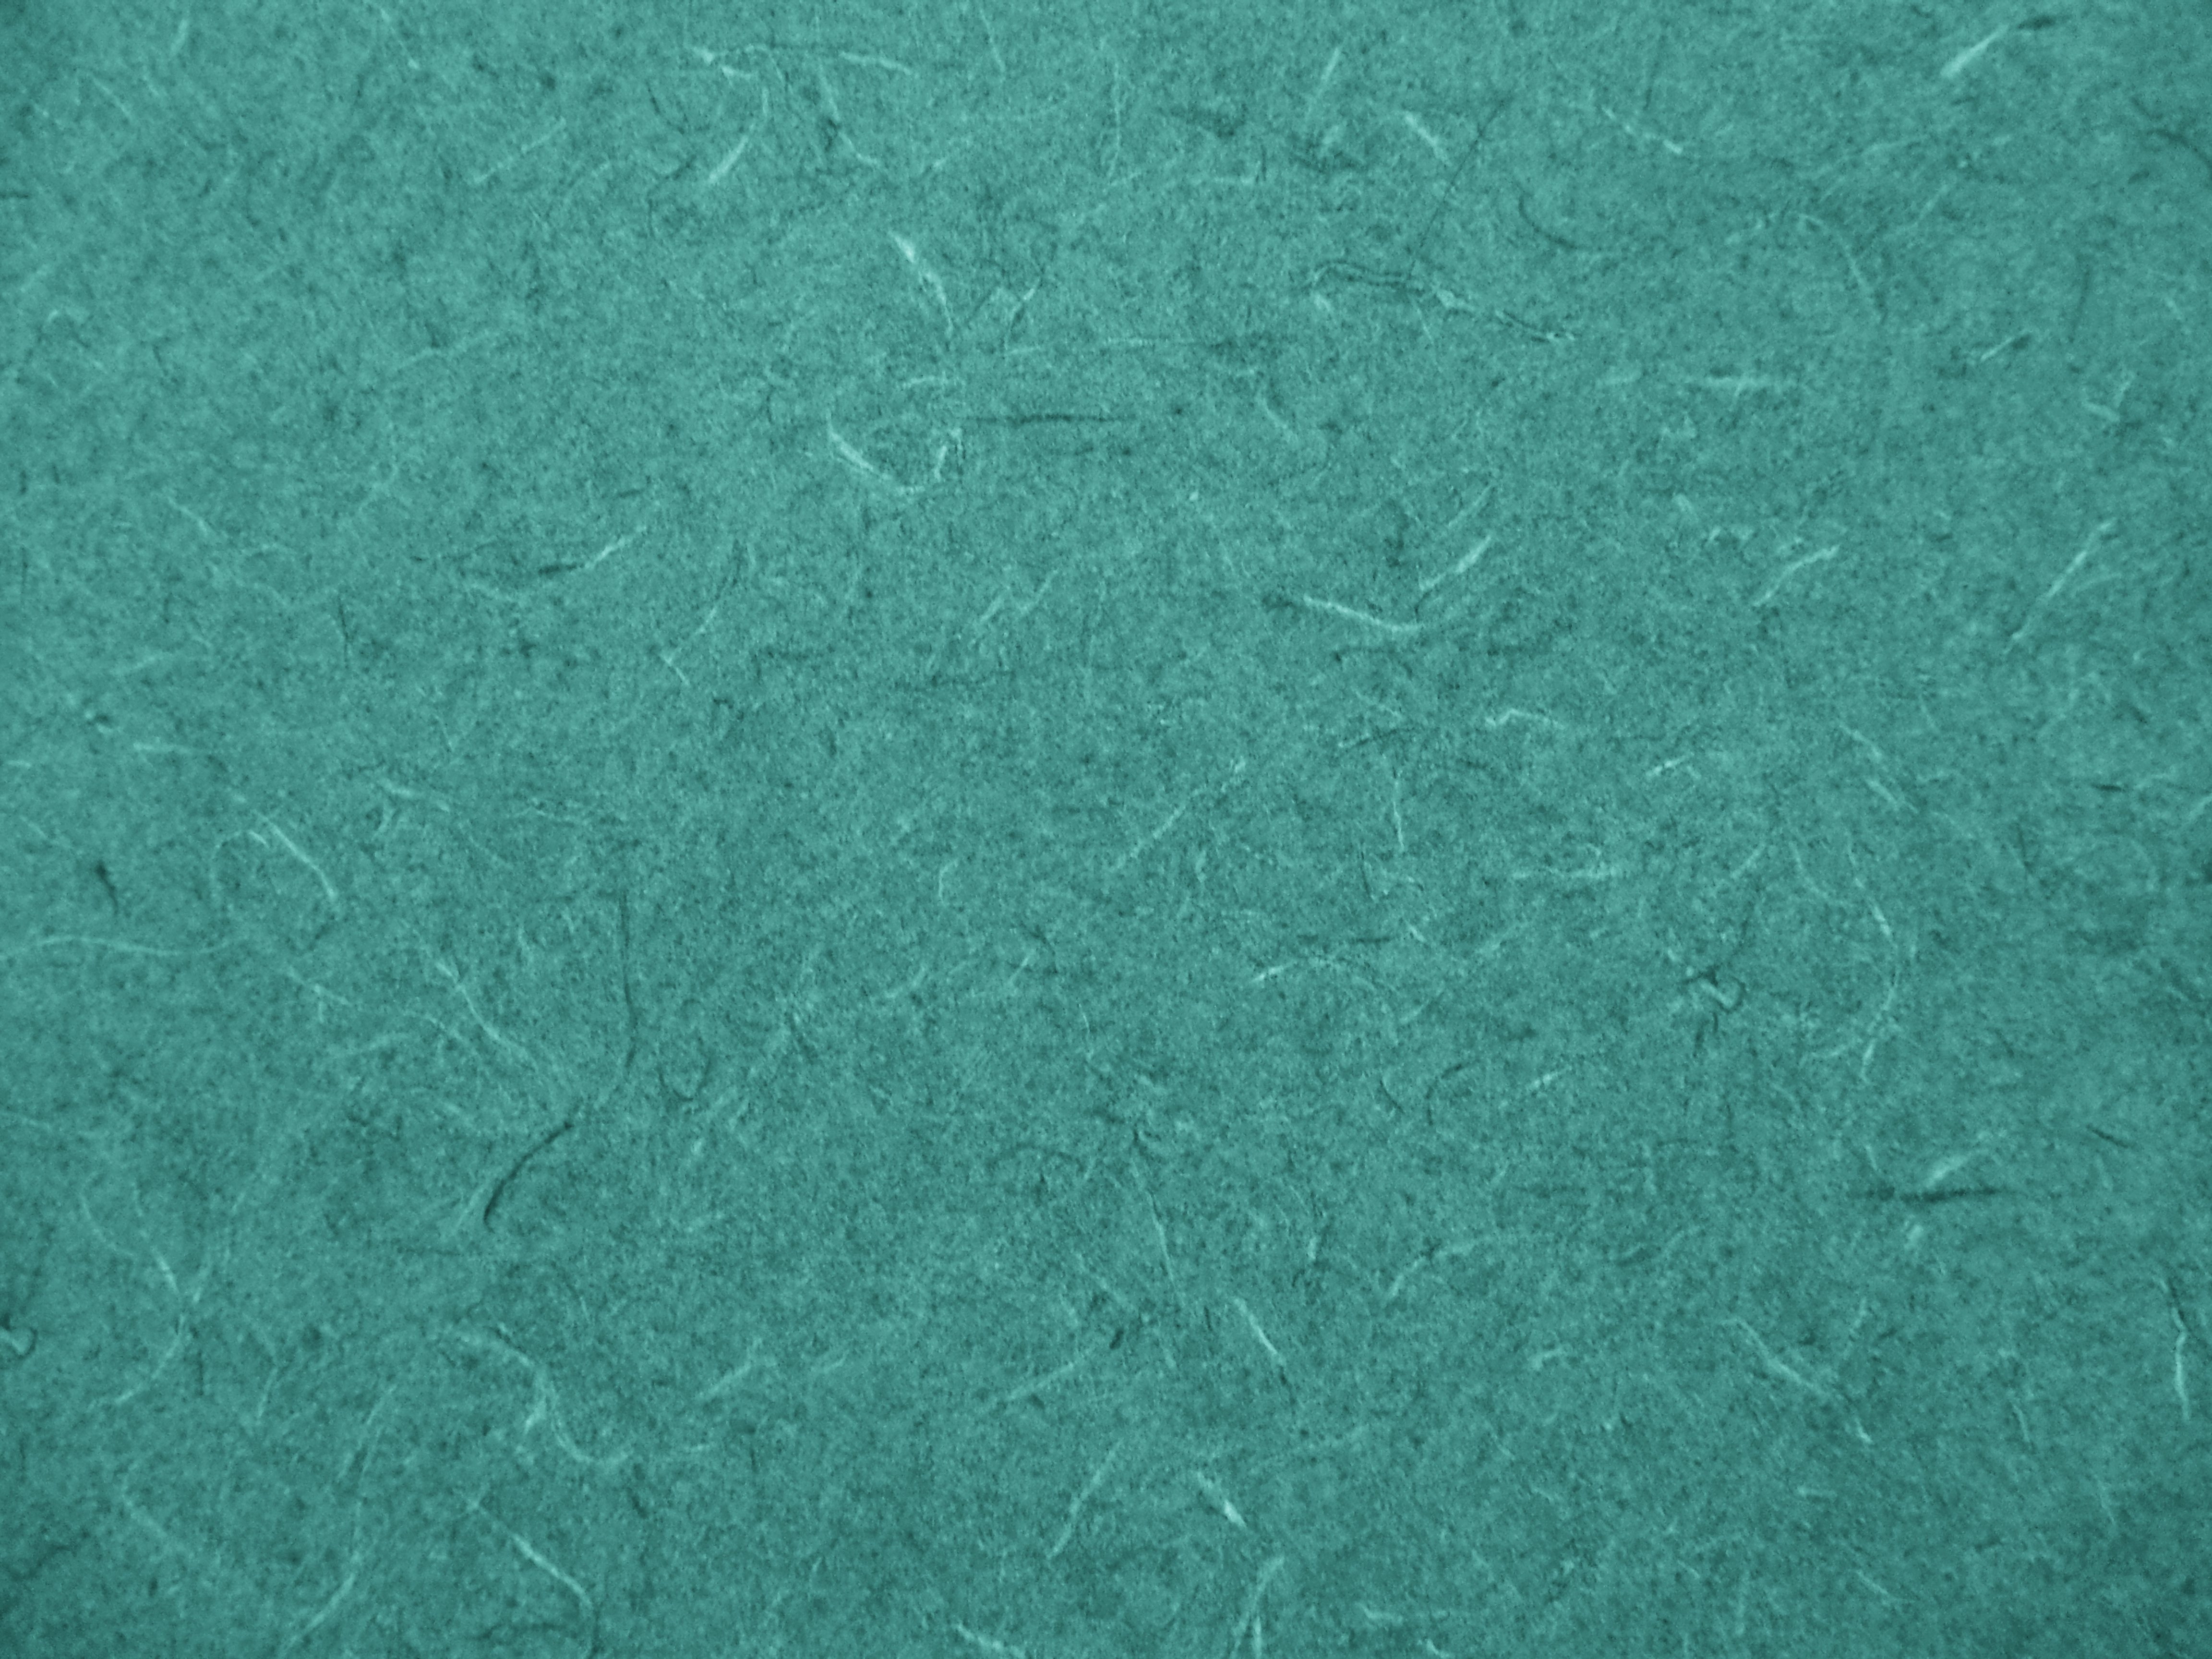 The Texture Of Teal And Turquoise: [42+] Gray And Turquoise Wallpaper On WallpaperSafari